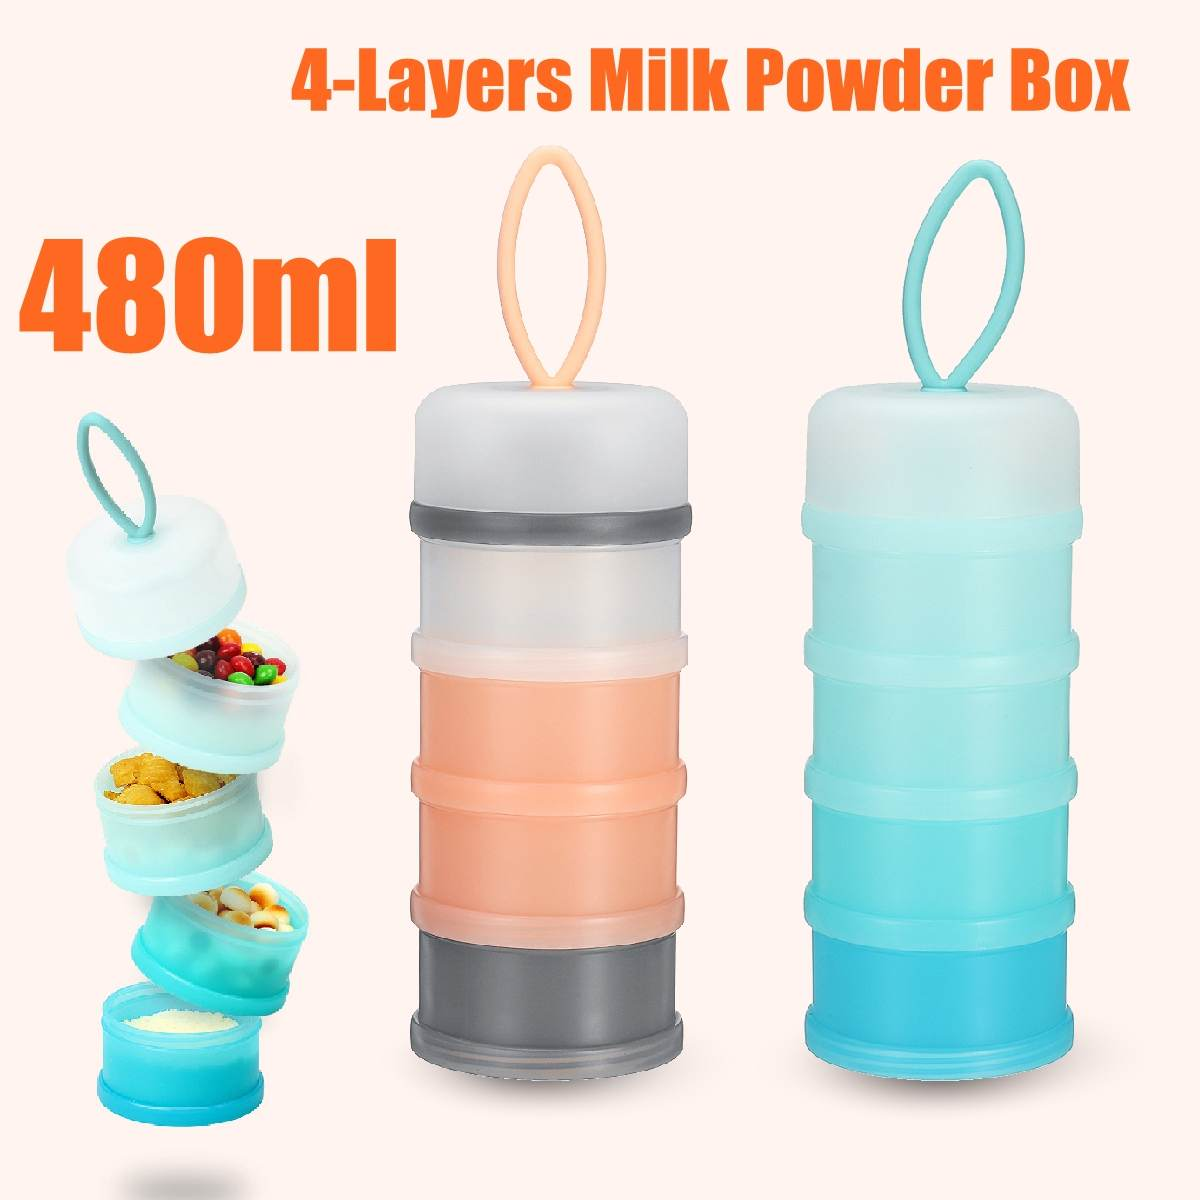 4 Layers Baby Tnfant Travel Milk Powder Dispenser Container Formula Feeding Box